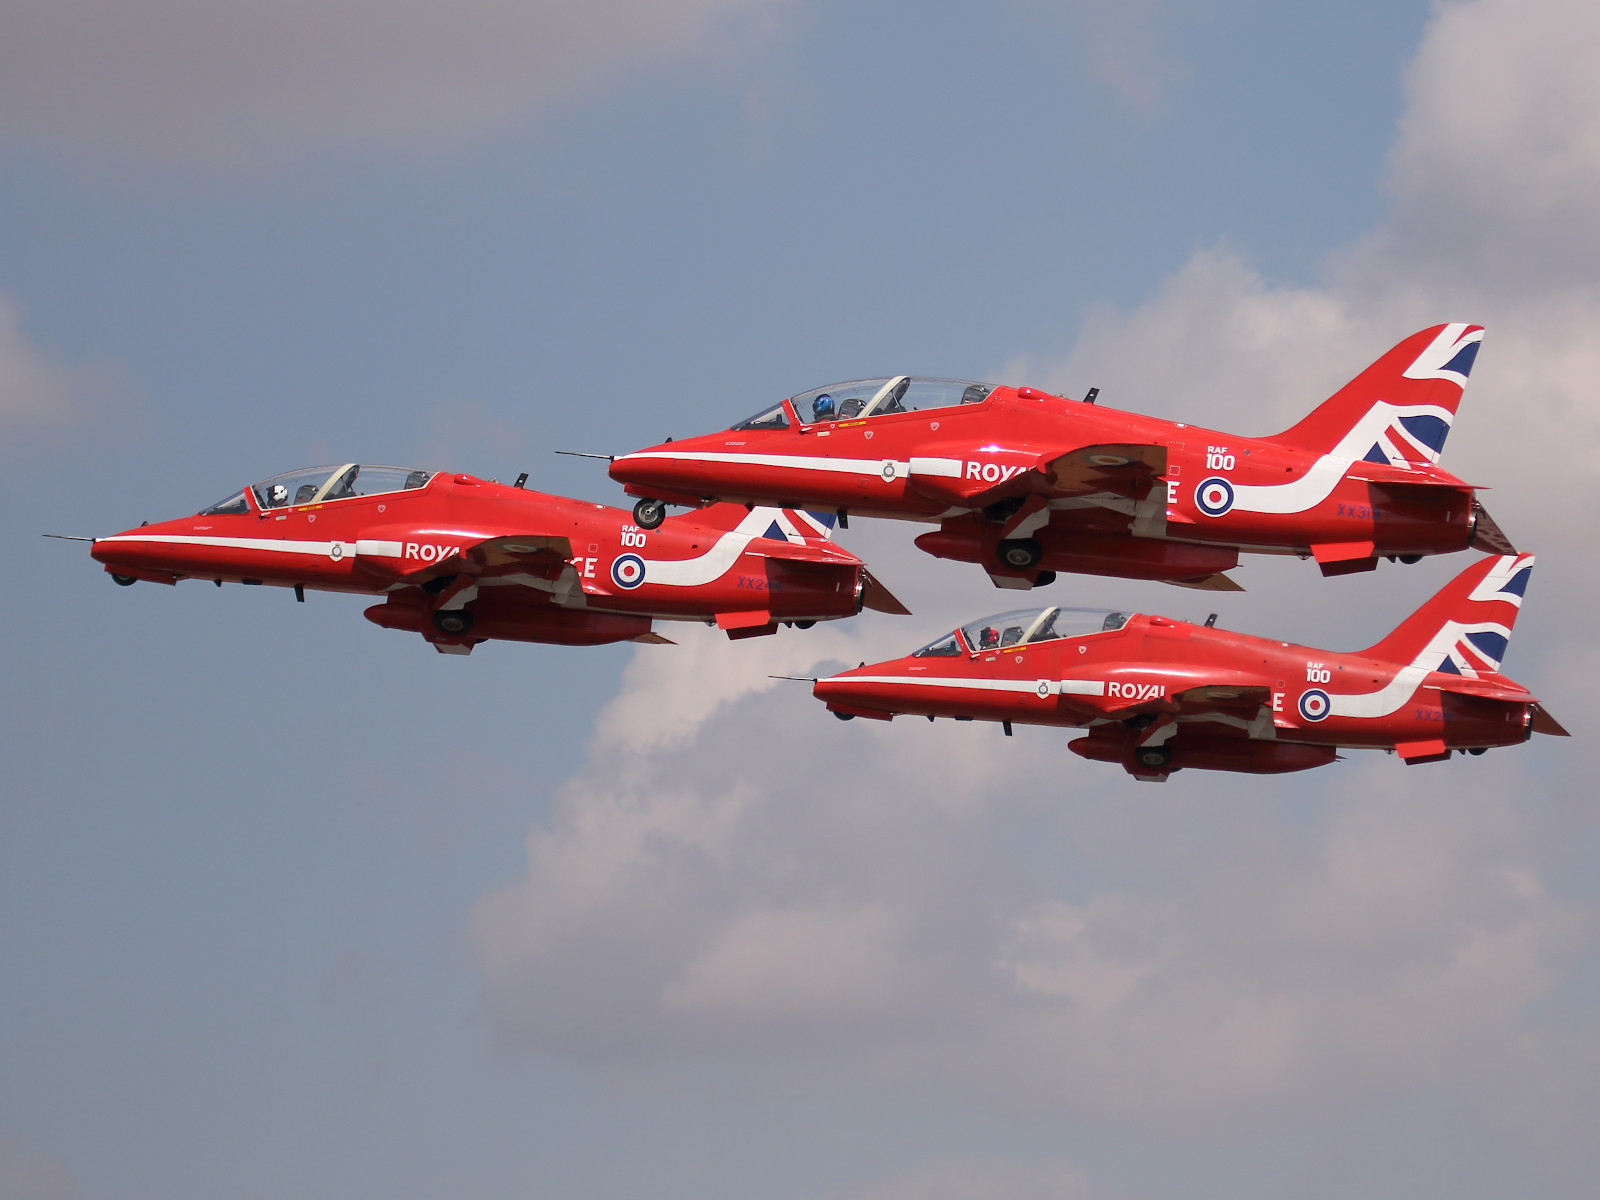 Red Arrows, das Kunstflugteam der RAF, auf BAE Systems Hawk T1 © Doppeladler.com